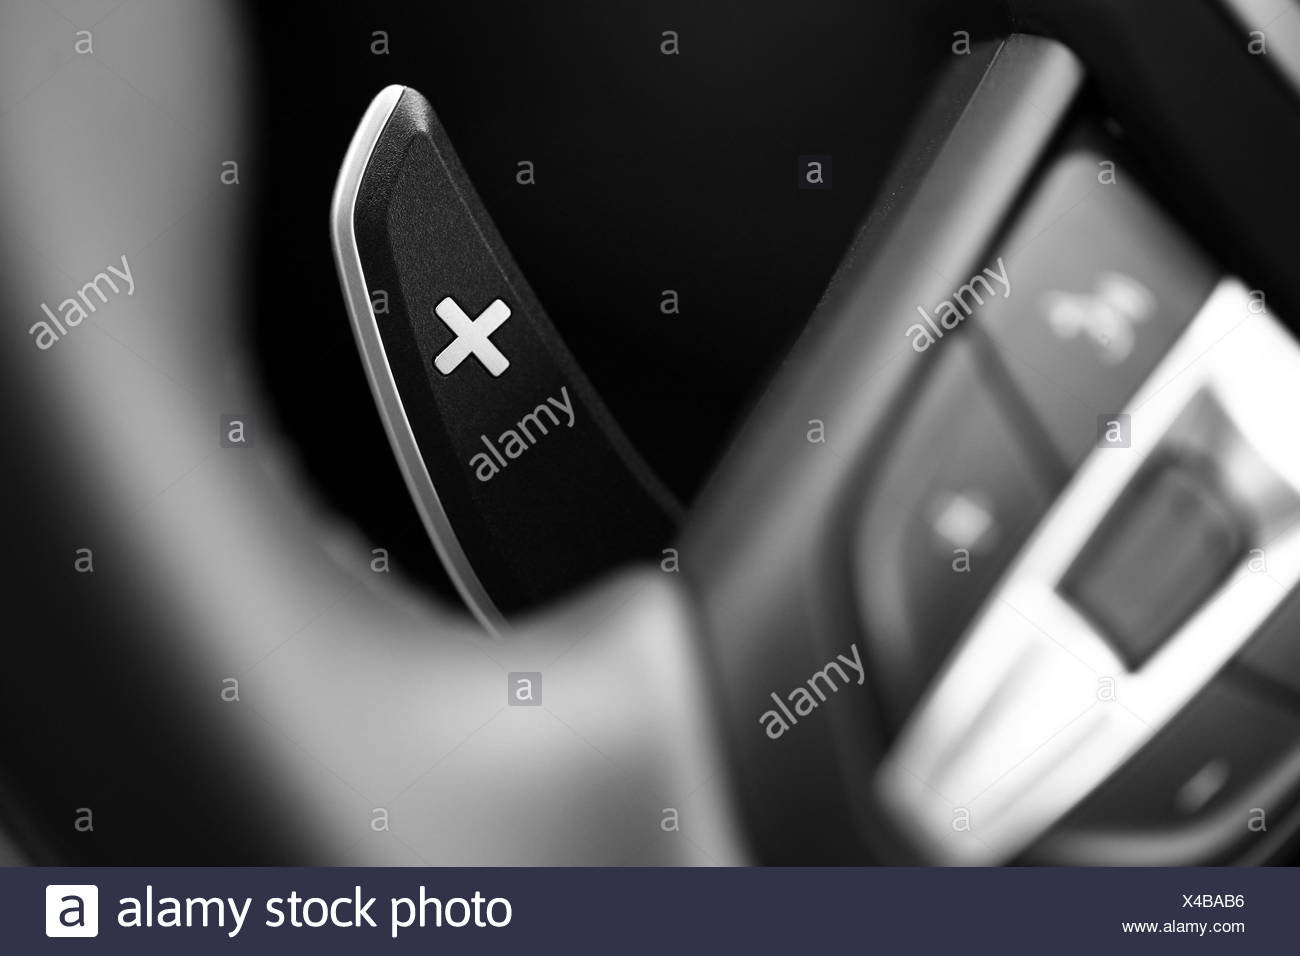 close up shot of a manual gear changing paddle on a car s steering rh alamy com Close-Up Photography Tumblr Up Close and Personal Photography